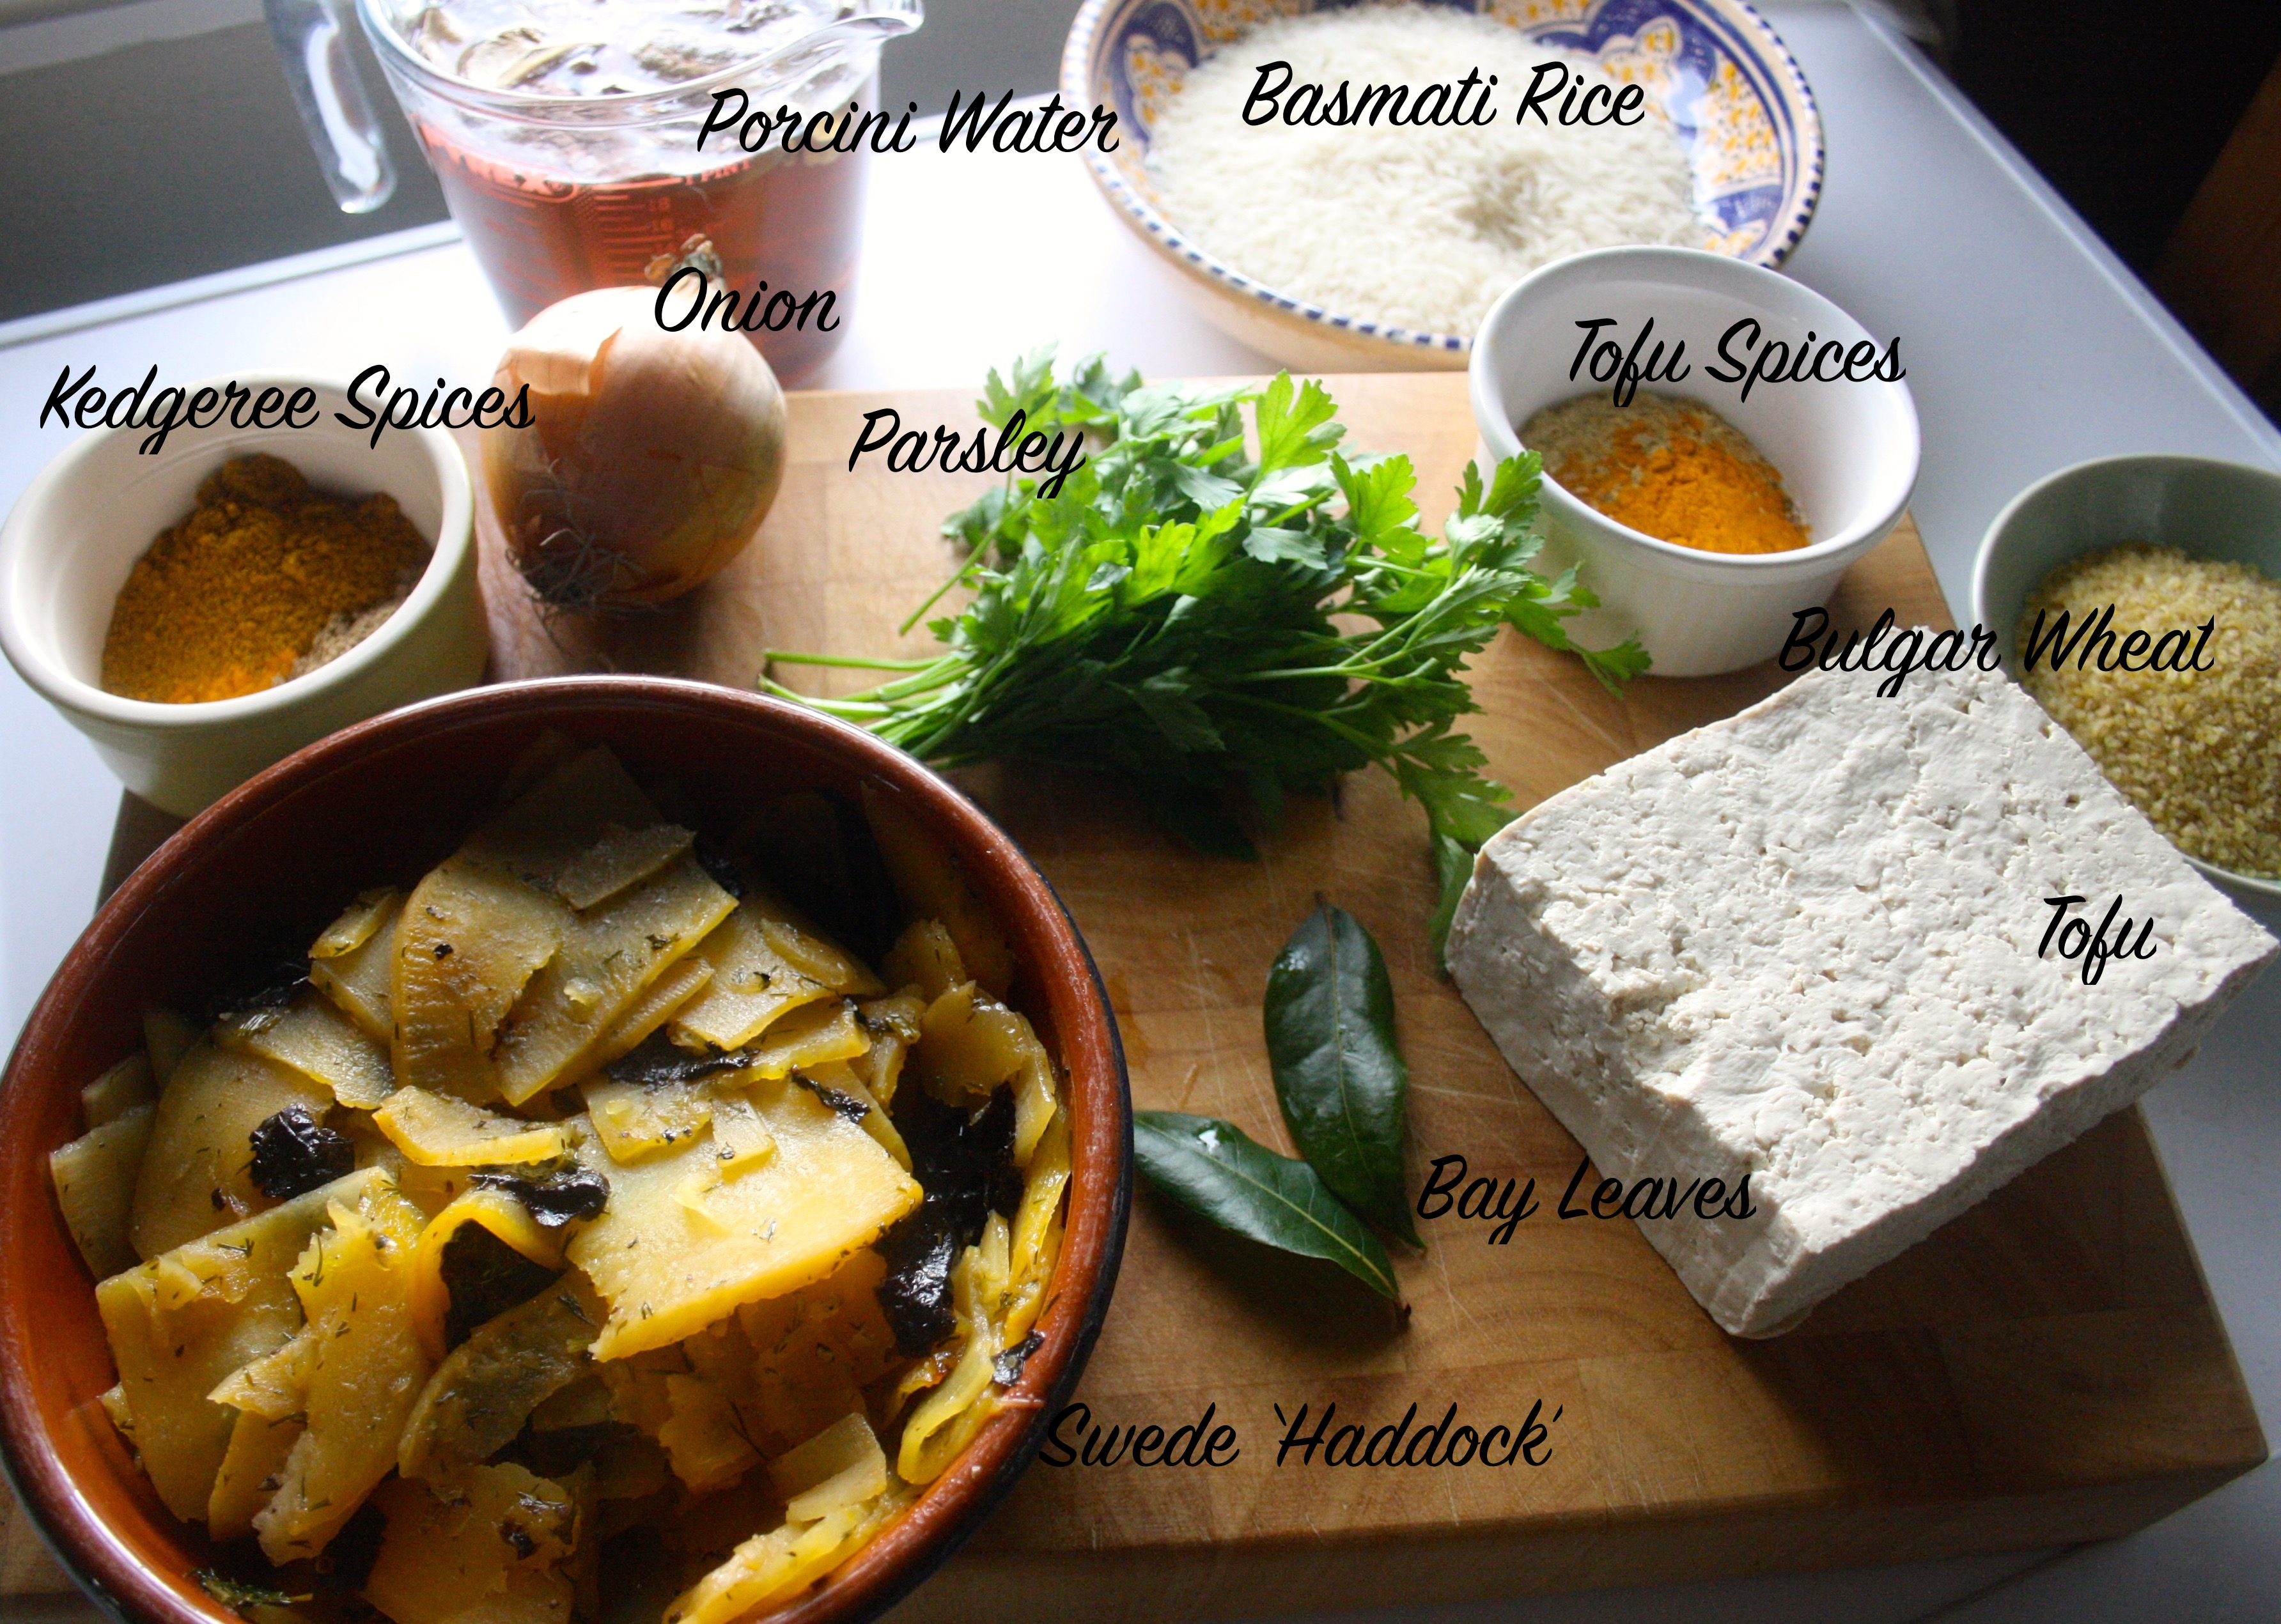 Vedgeree Ingredients